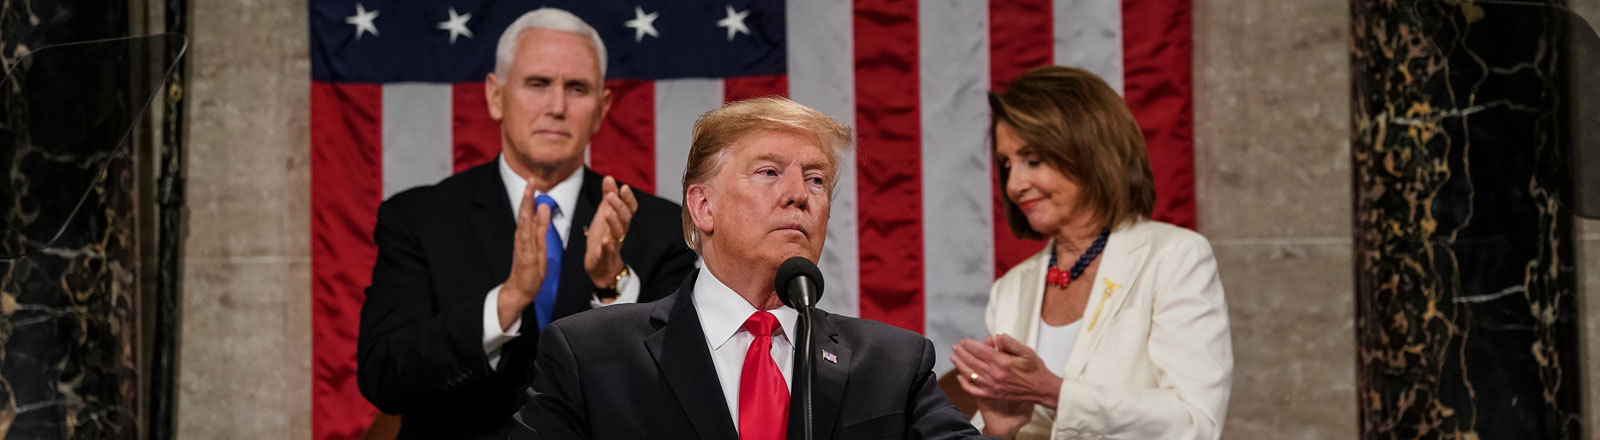 President Donald Trump delivered the State of the Union address, with Vice President Mike Pence and Speaker of the House Nancy Pelosi, at the Capitol in Washington, DC on February 5, 2019.